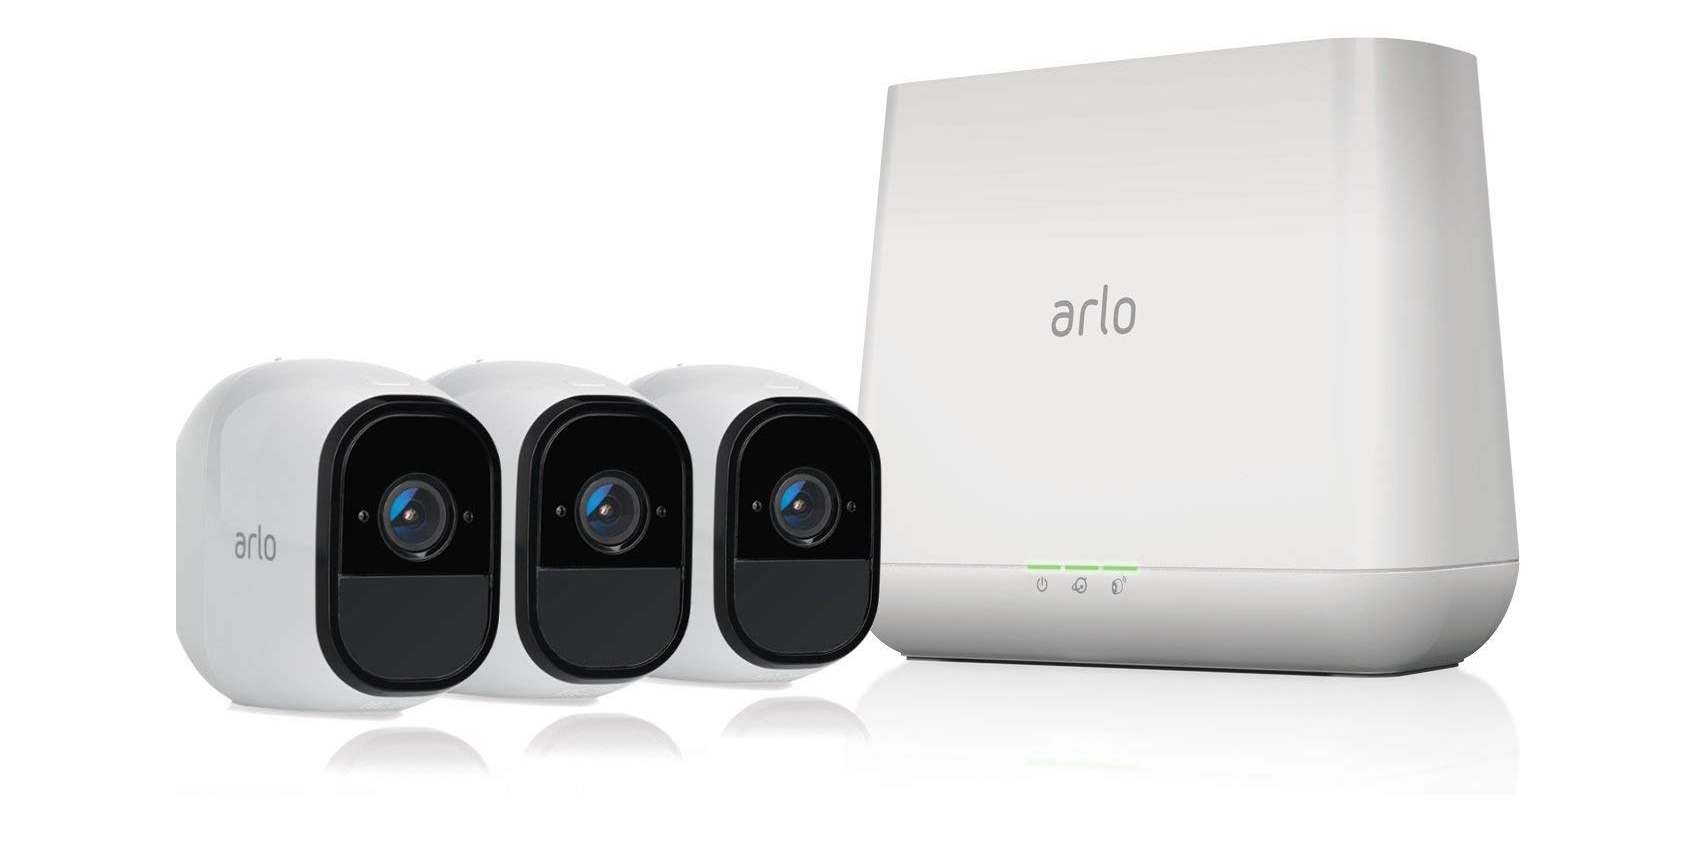 Arlo Pro cameras include FREE 7-day cloud storage: 3-pack $335 (Reg. $450), more from $168